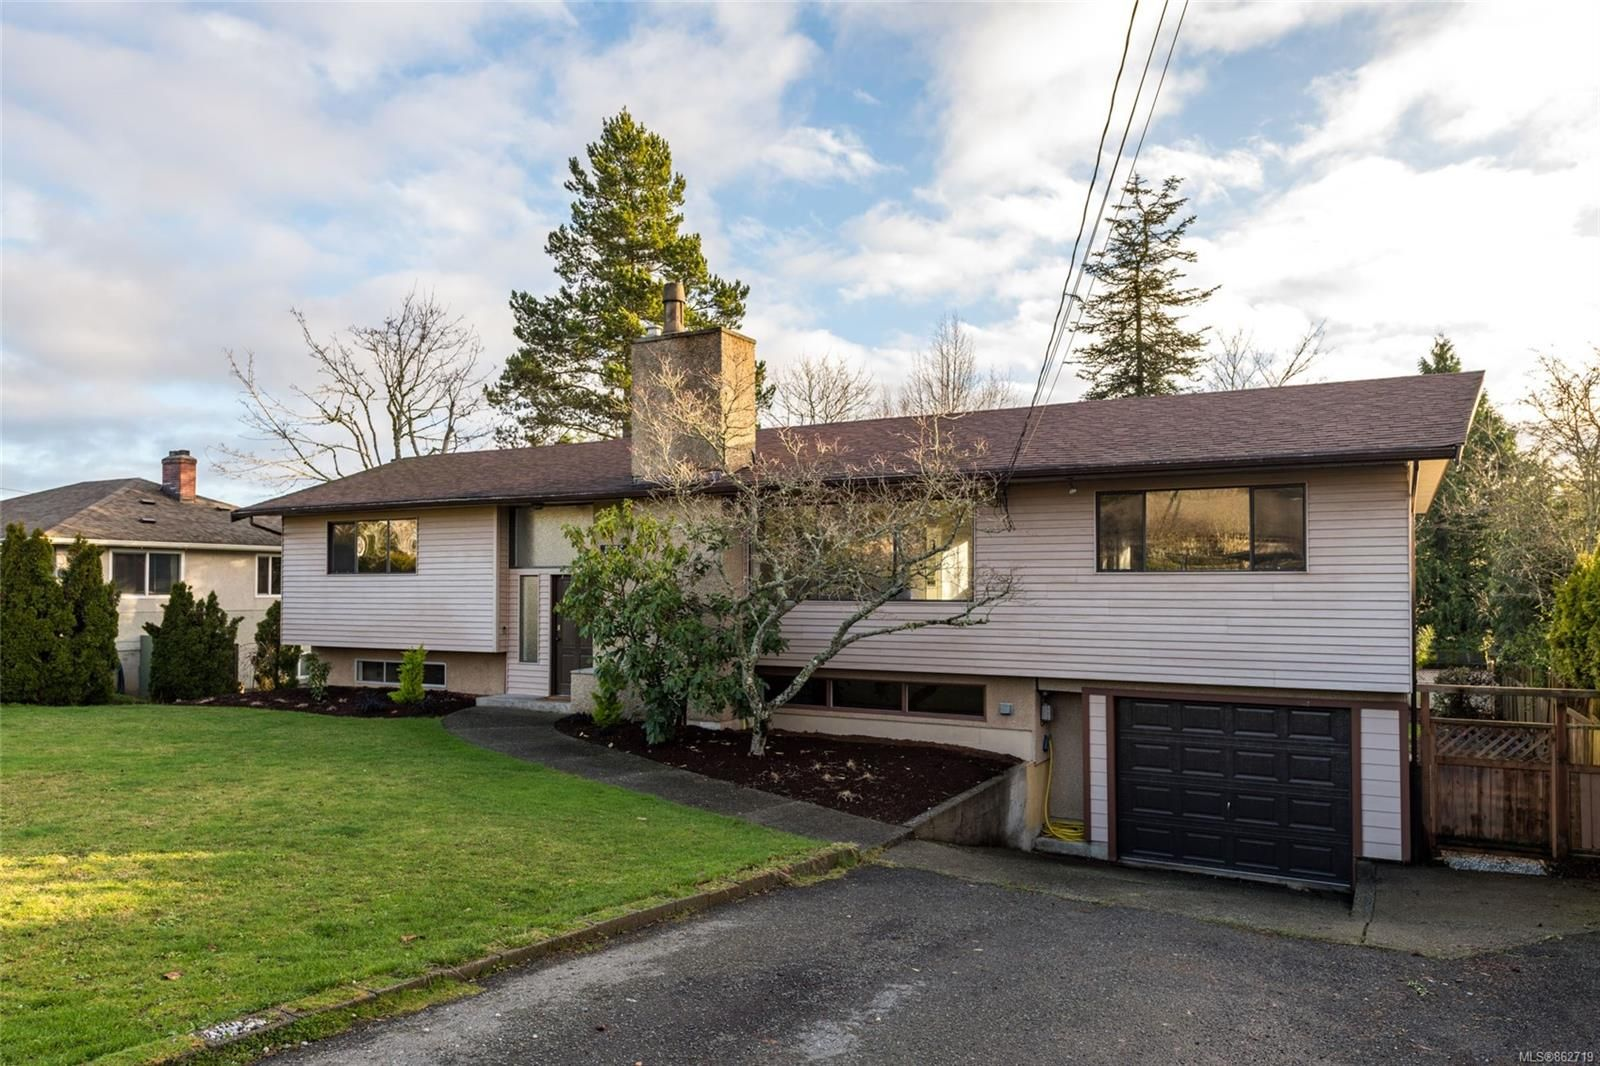 Main Photo: 1175 Verdier Ave in : CS Brentwood Bay House for sale (Central Saanich)  : MLS®# 862719